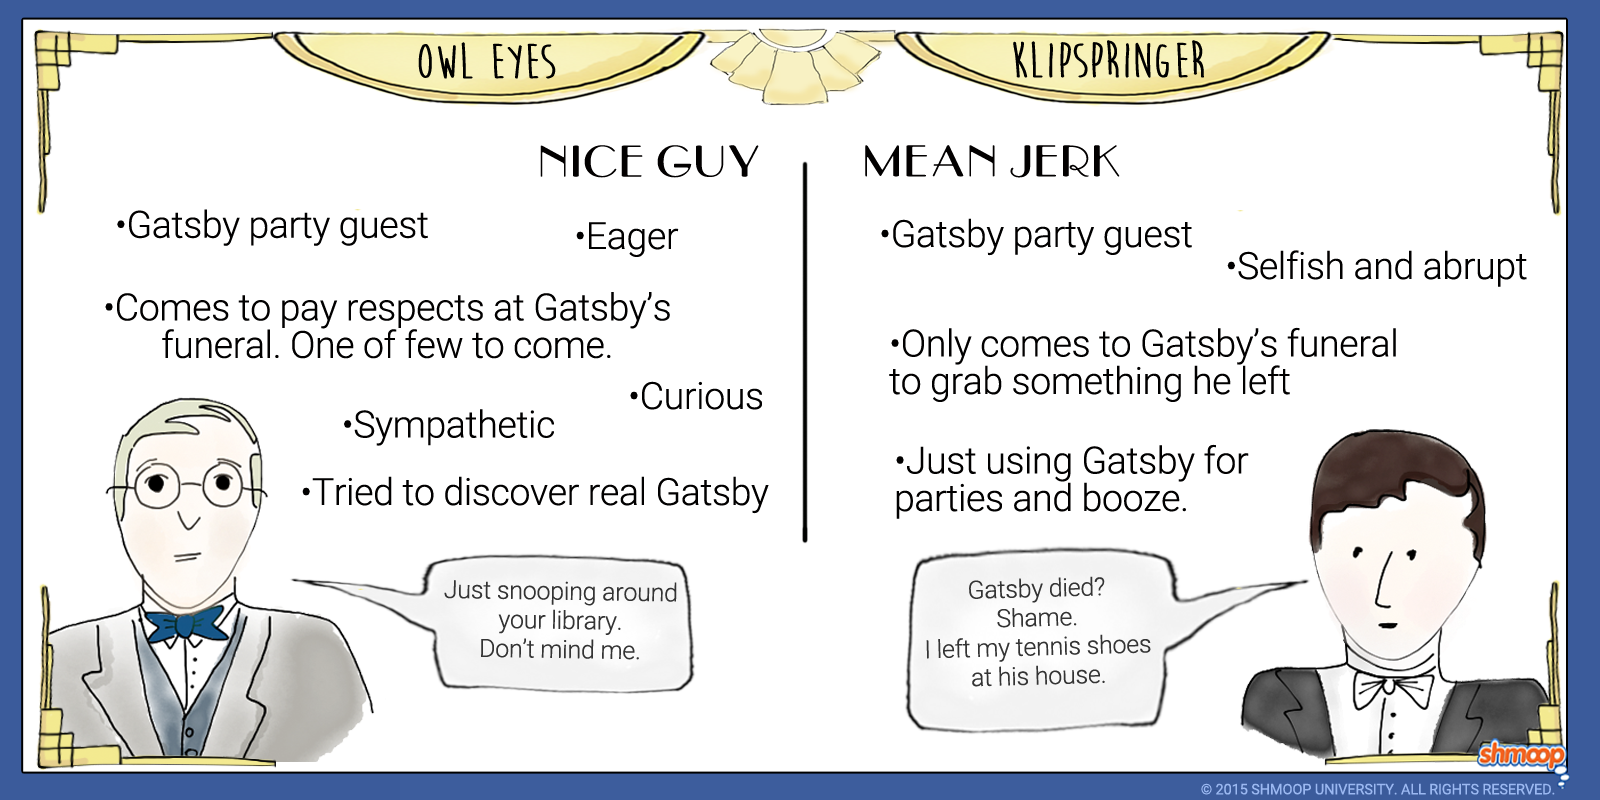 nick carraway character analysis essay Nick carraway, the narrator of the classic novel, ''the great gatsby'', plays several roles that connect all of the other characters to the title.